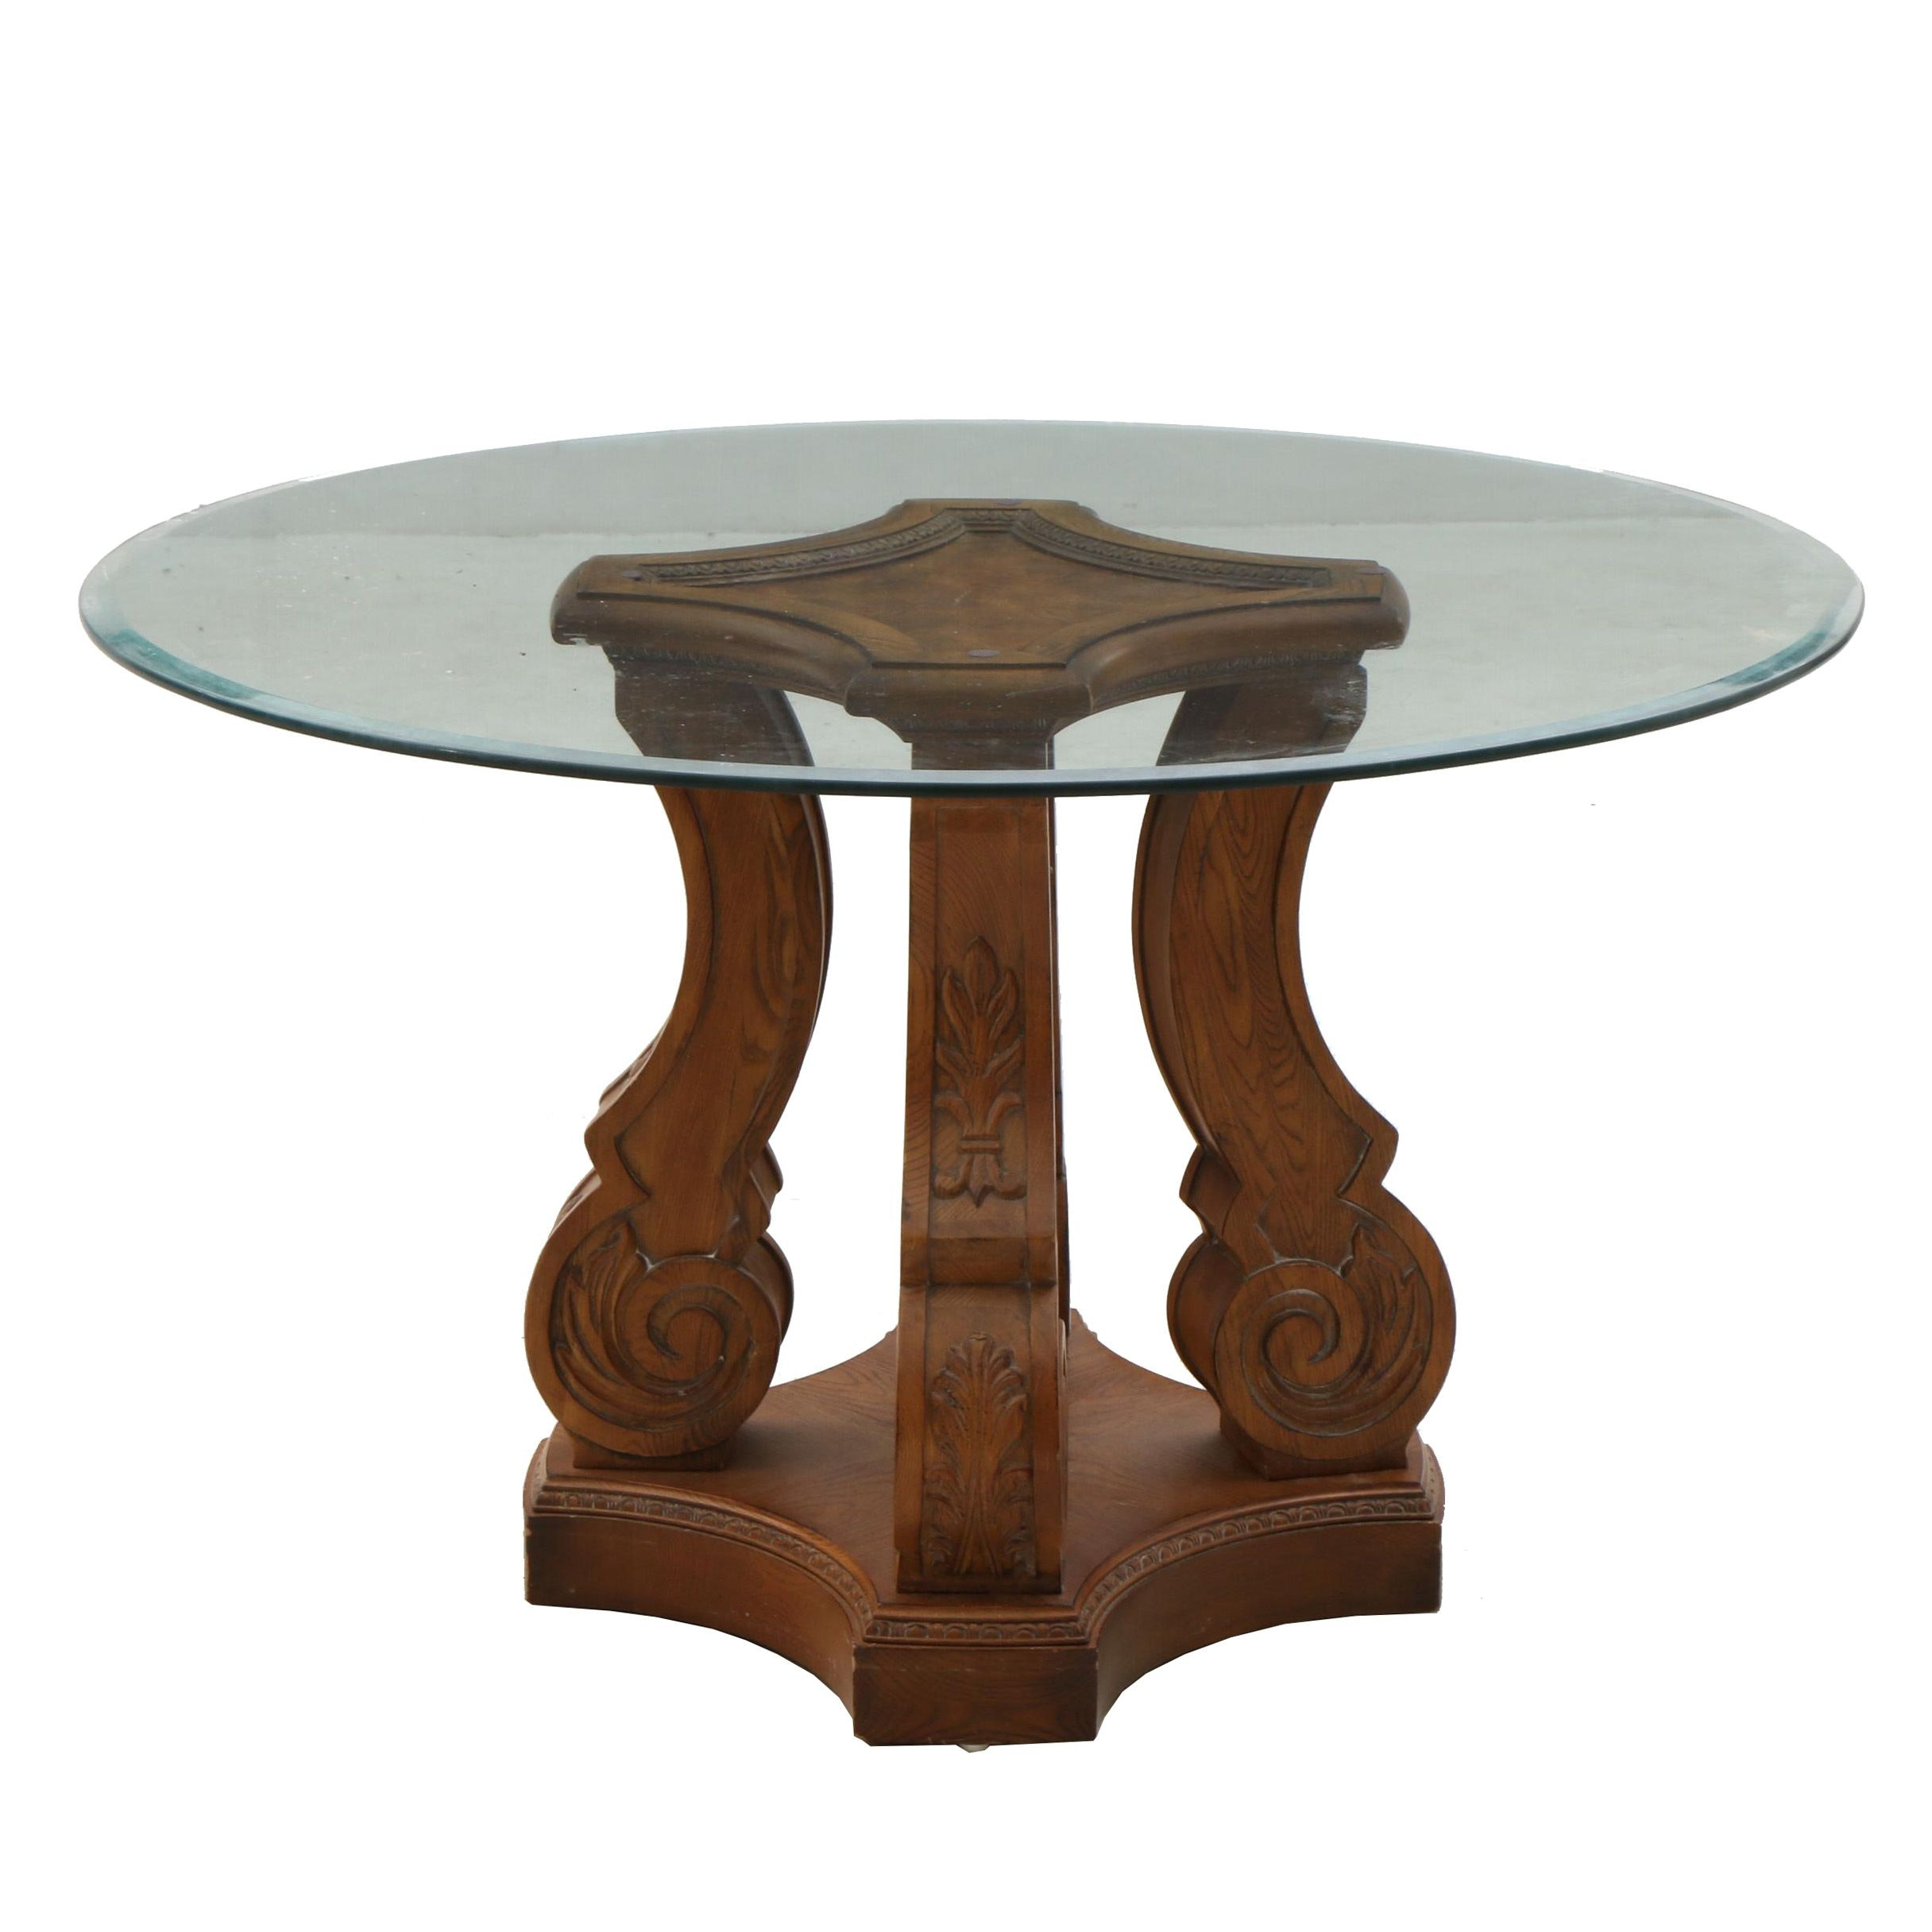 Victorian Style Dining Table with Glass Top